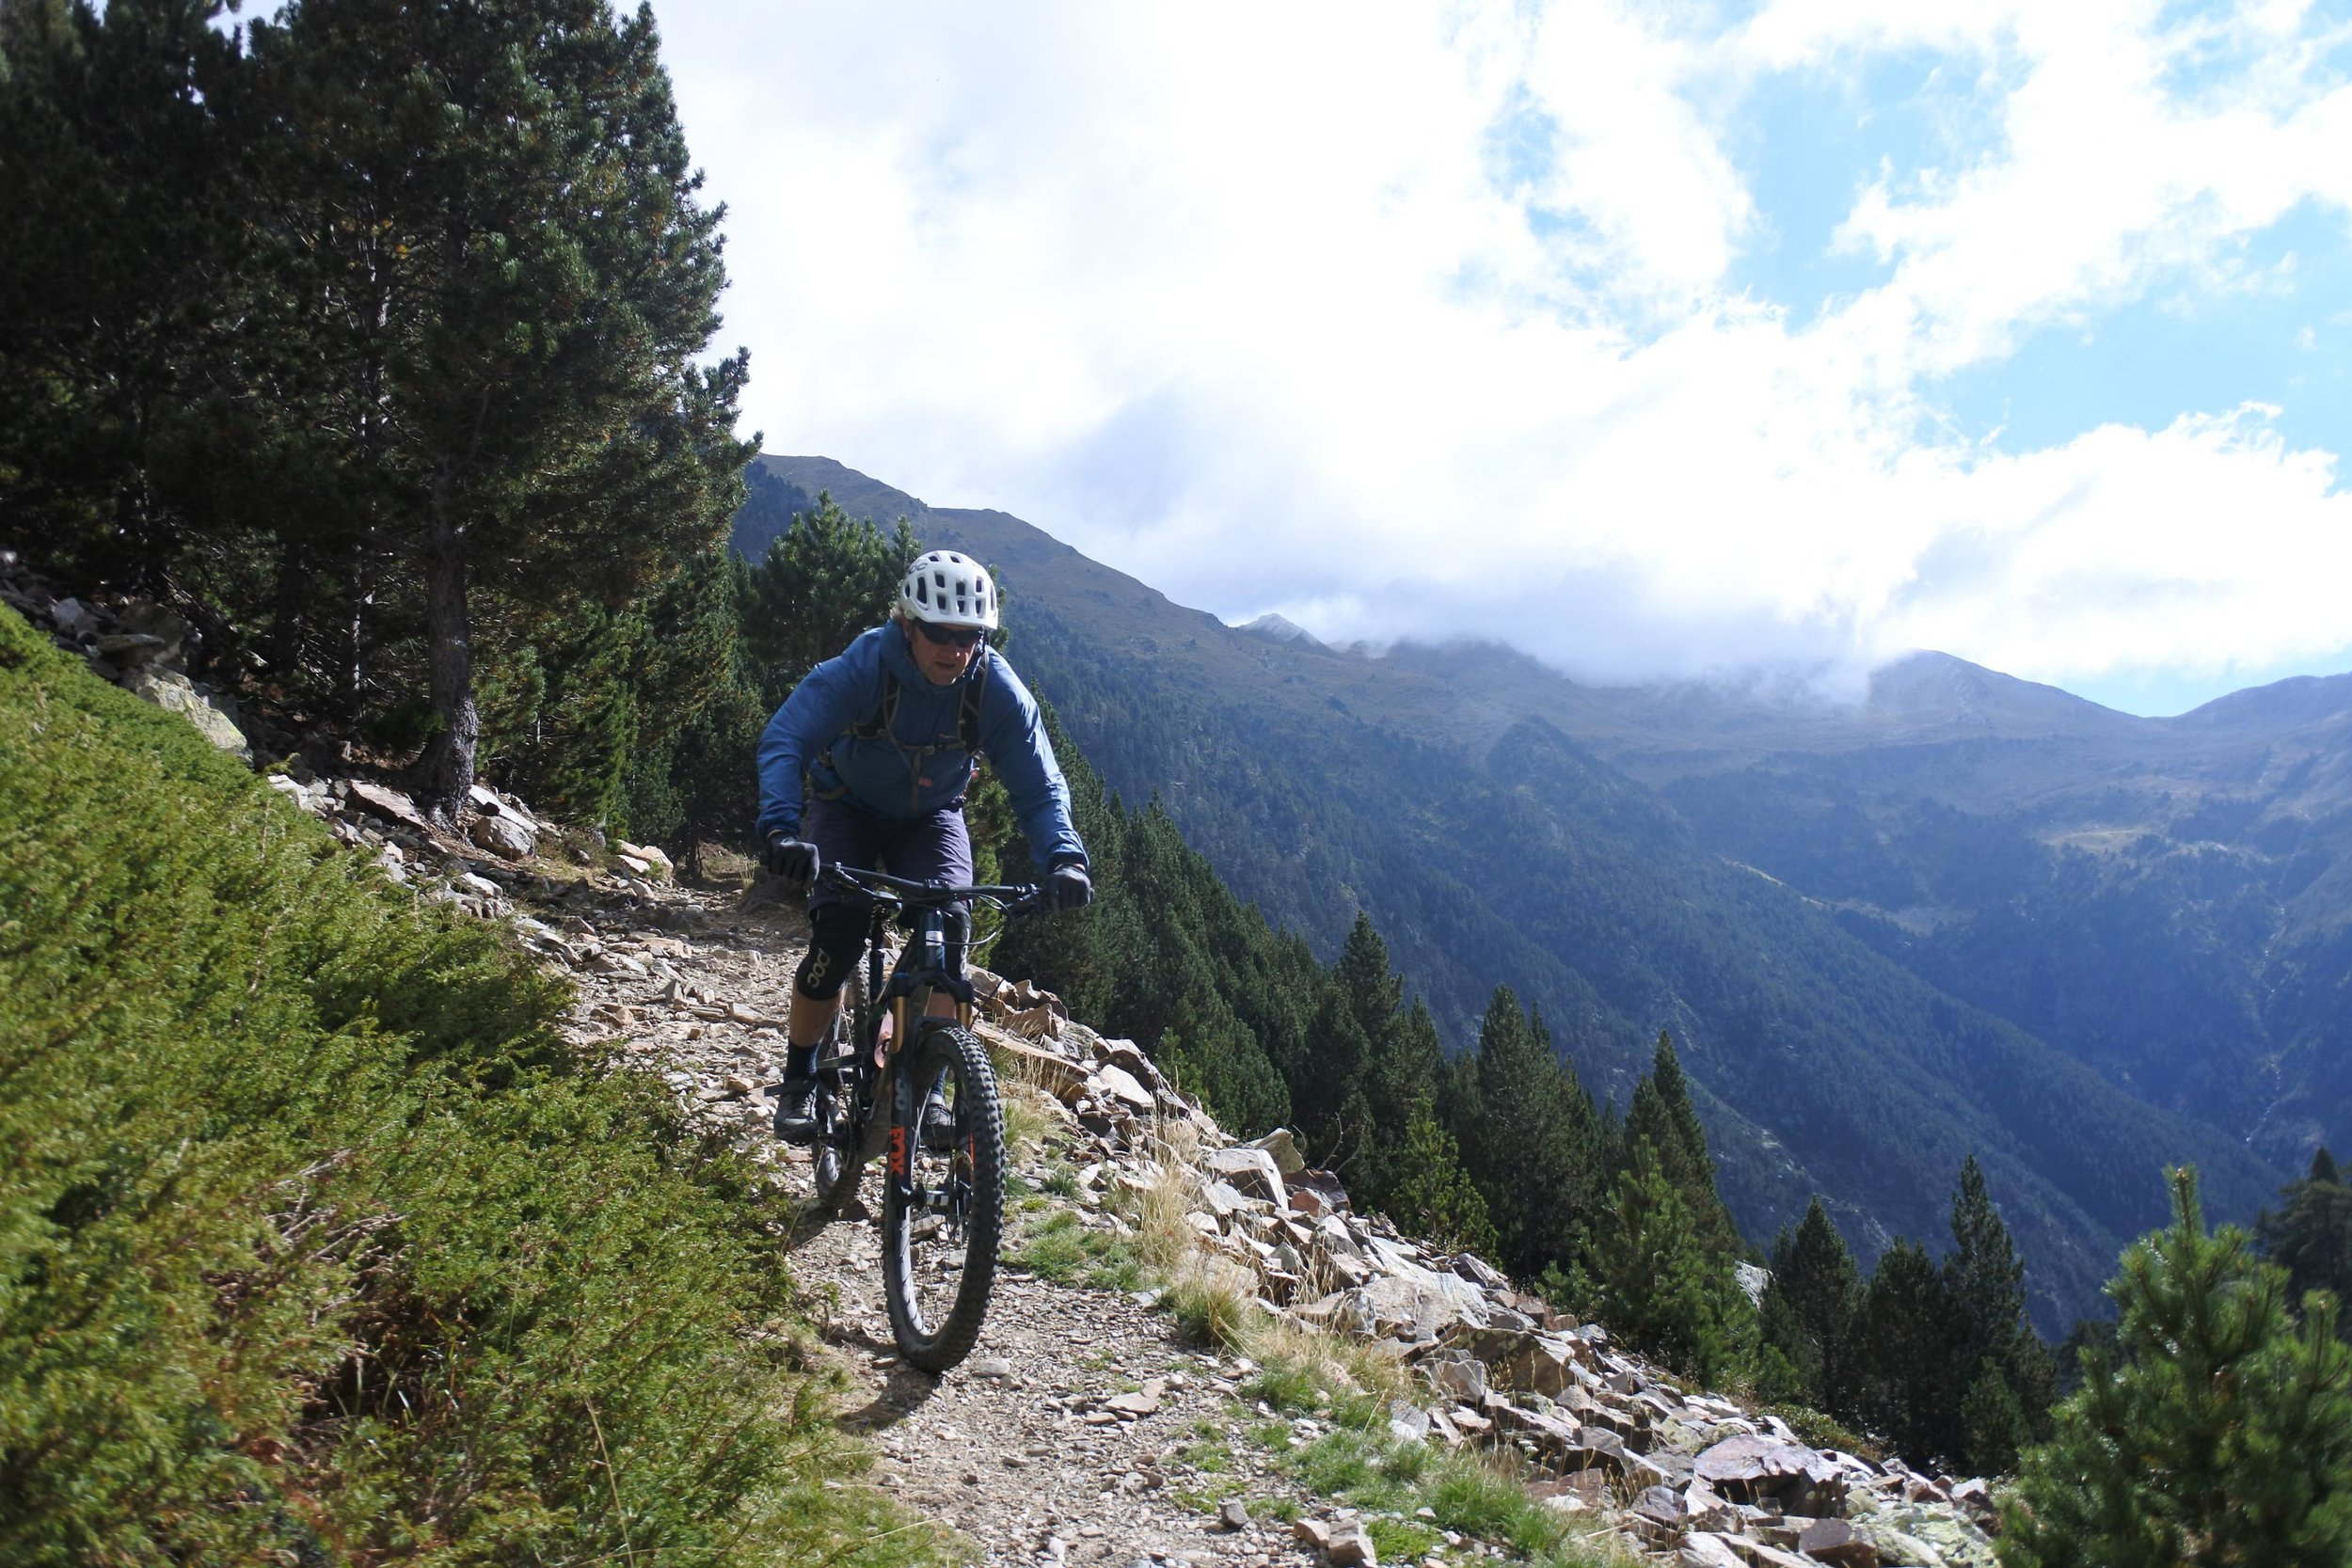 Mark riding down some alpine trails near the French border